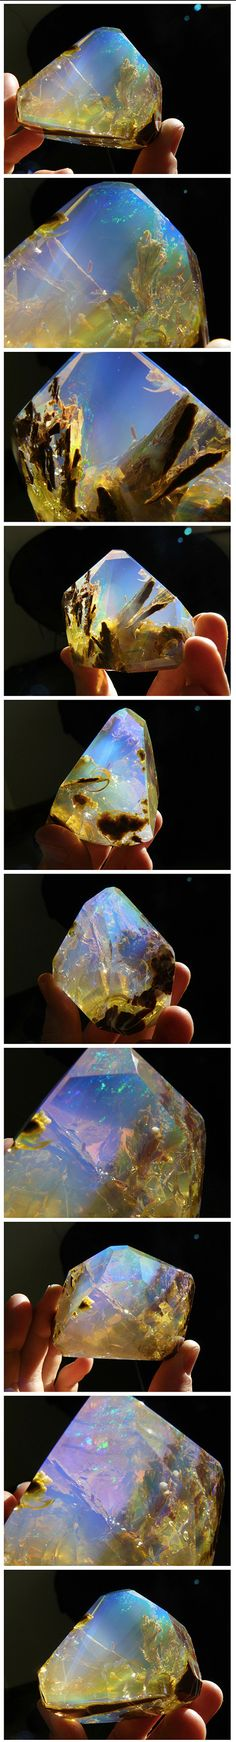 """""""Crystals and gems are revered and collected for their physical beauty and monetary value and this Opal Butte crystal with contra luz color is no exception. The stunning gemstone, like many opals, features a varied spectrum of colors, but what separates it from the others is its spectacular visual effect. It looks like an underwater view of the ocean floor as light shines through it. There's a surreal quality about the gemstone that looks like a pocket-sized aquarium."""""""